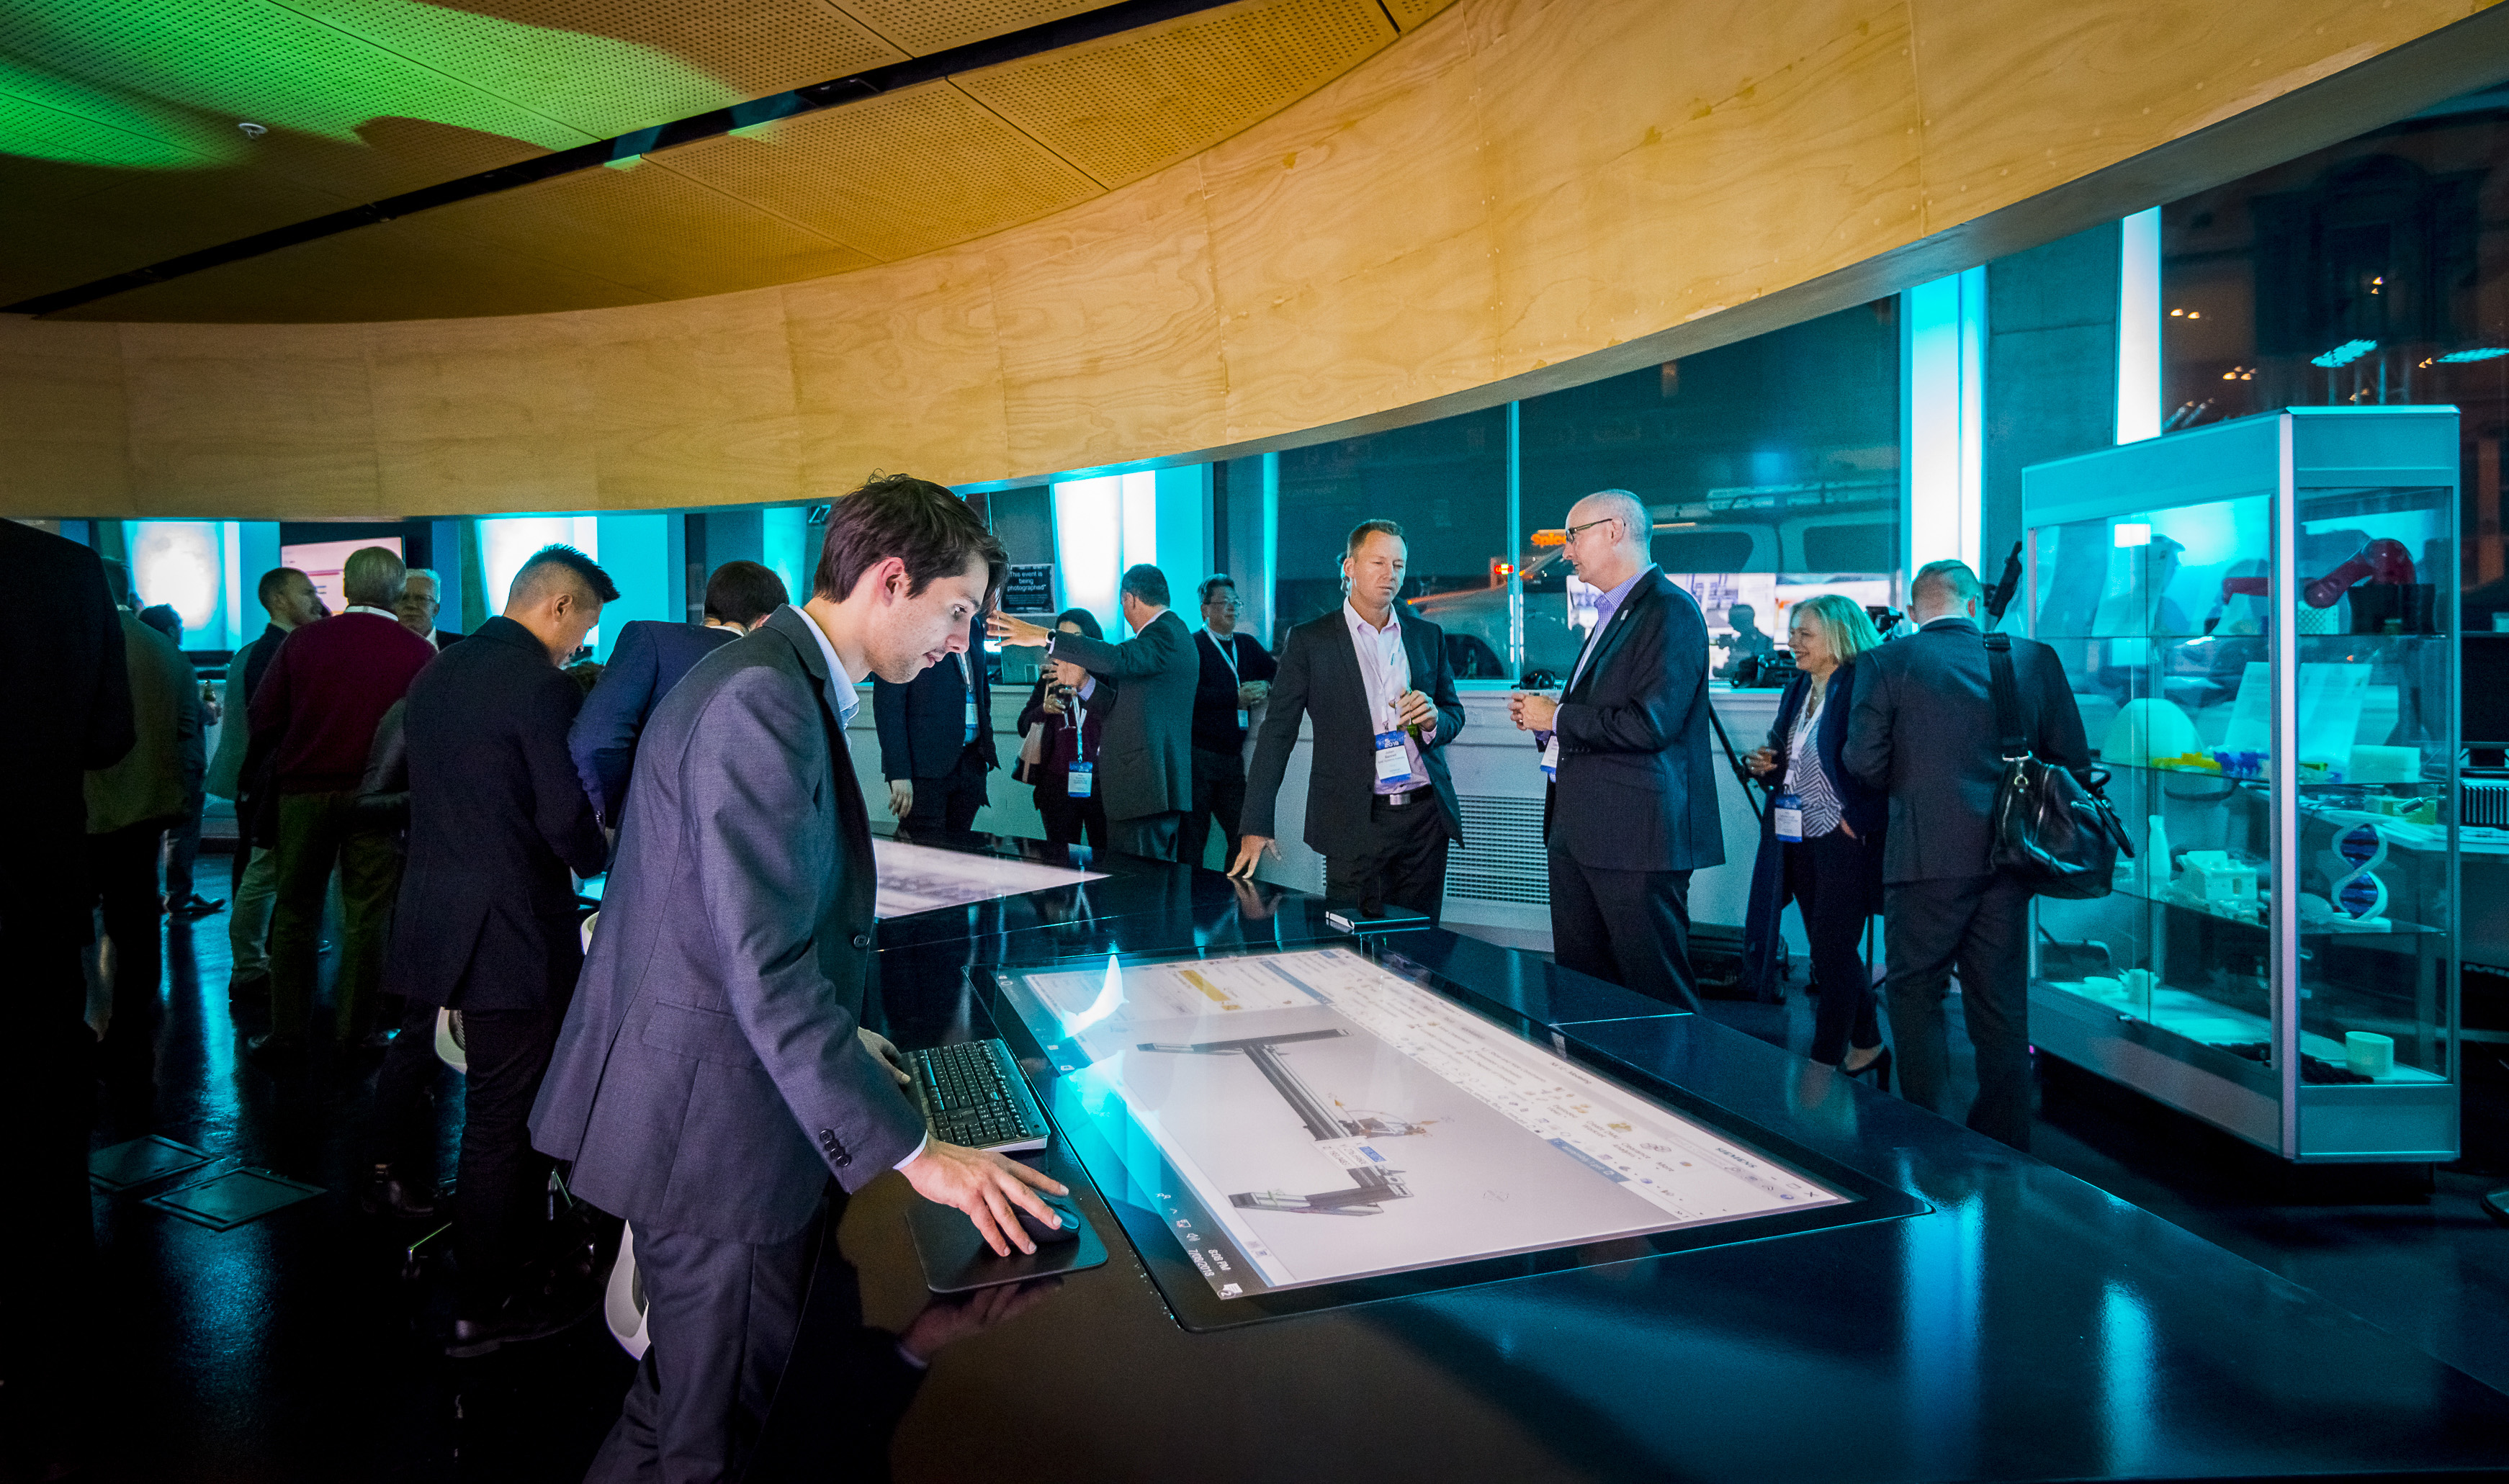 Swinburne graduate Callan Halton, operating a touch screen showing a Siemens factory simulation at the MindSphere launch event